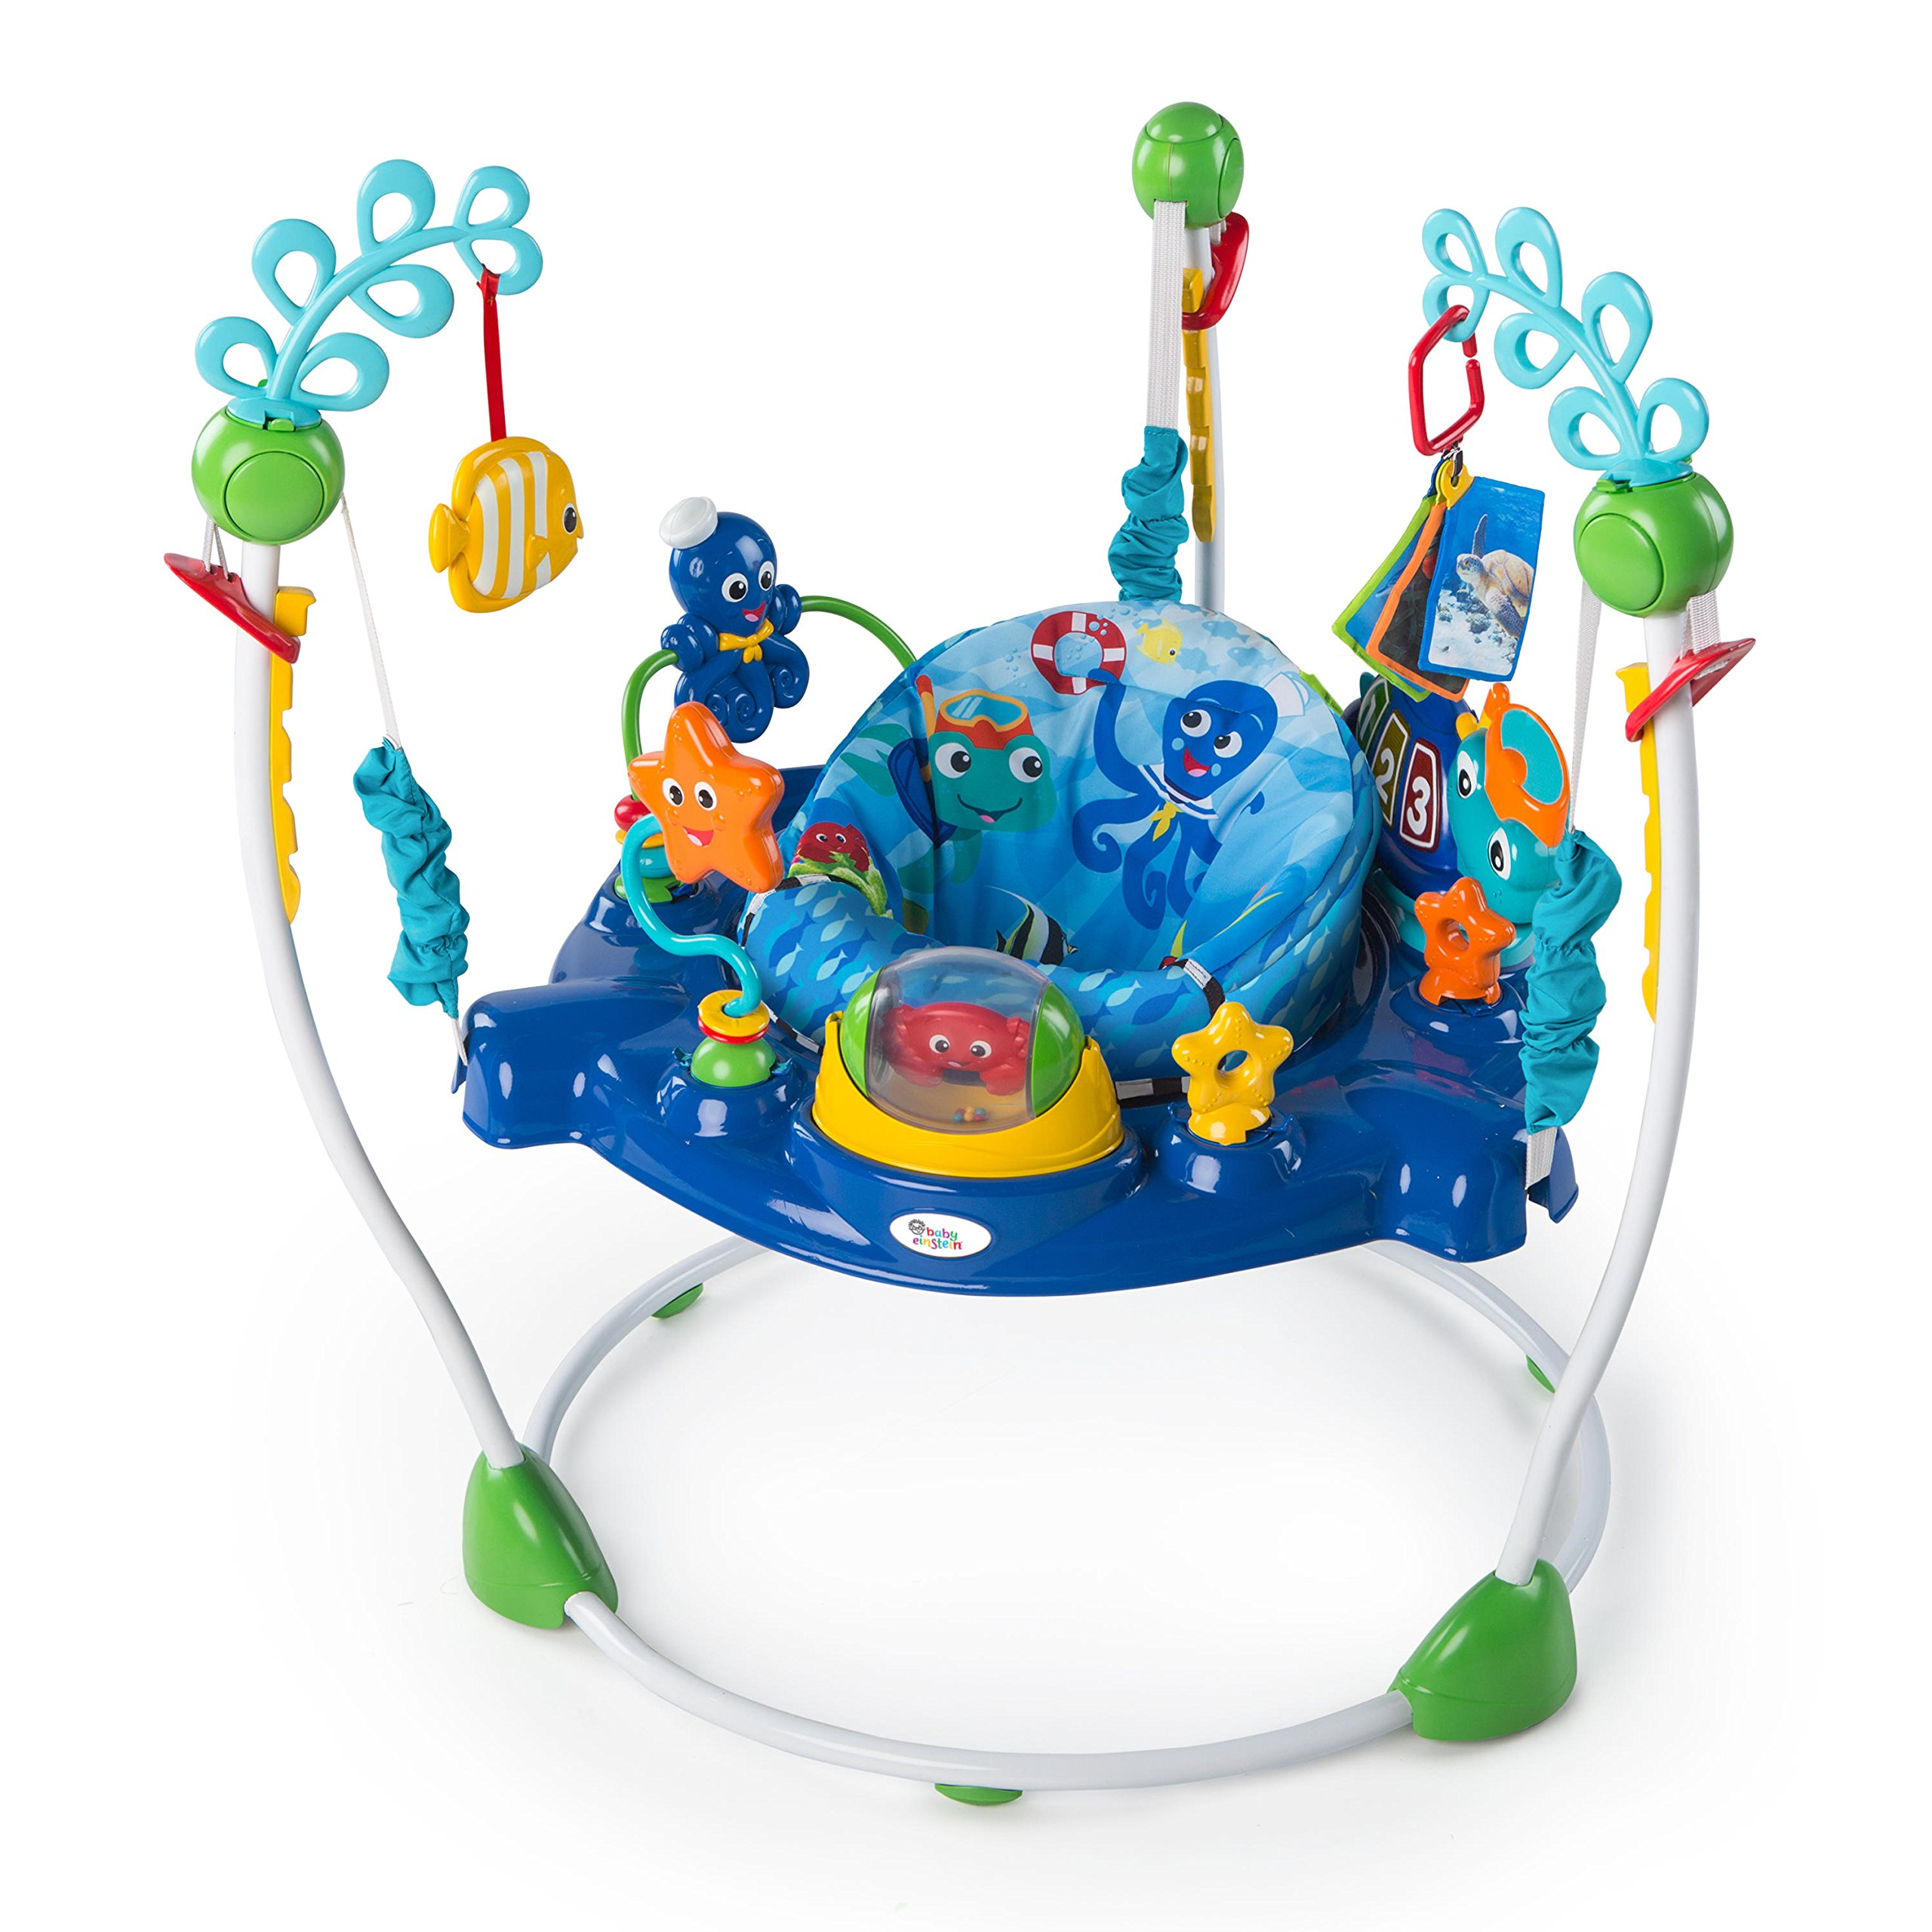 1e4fd6821 Baby Einstein Jumper Bouncer Exersaucer Learning Educational ...